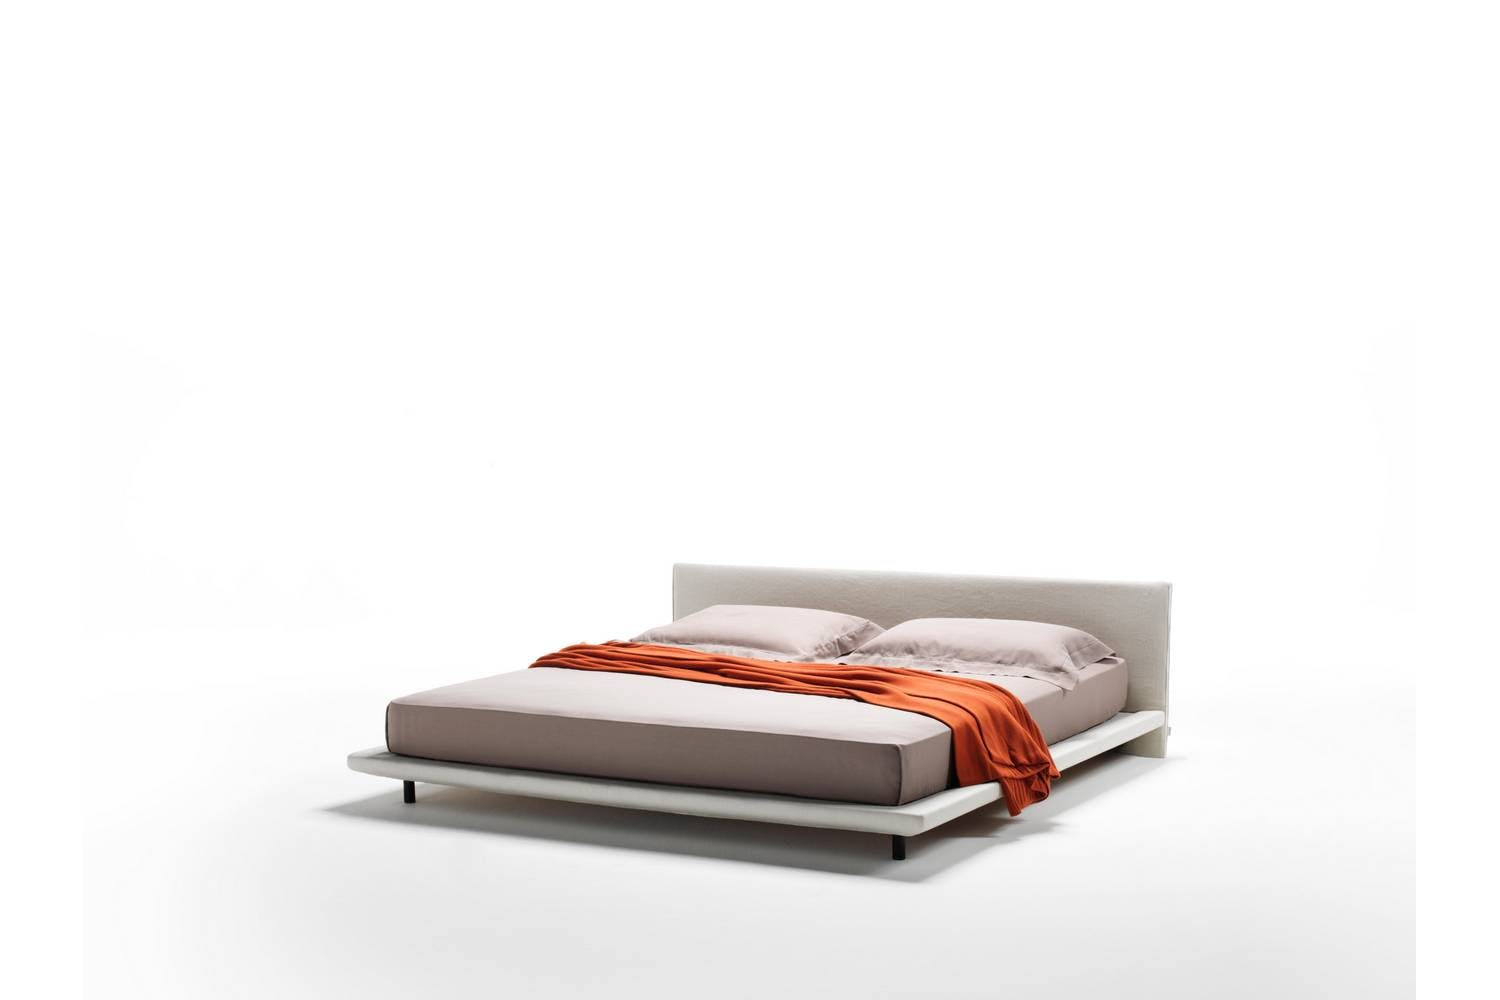 Chemise Bed by Piero Lissoni for Living Divani | Space Furniture